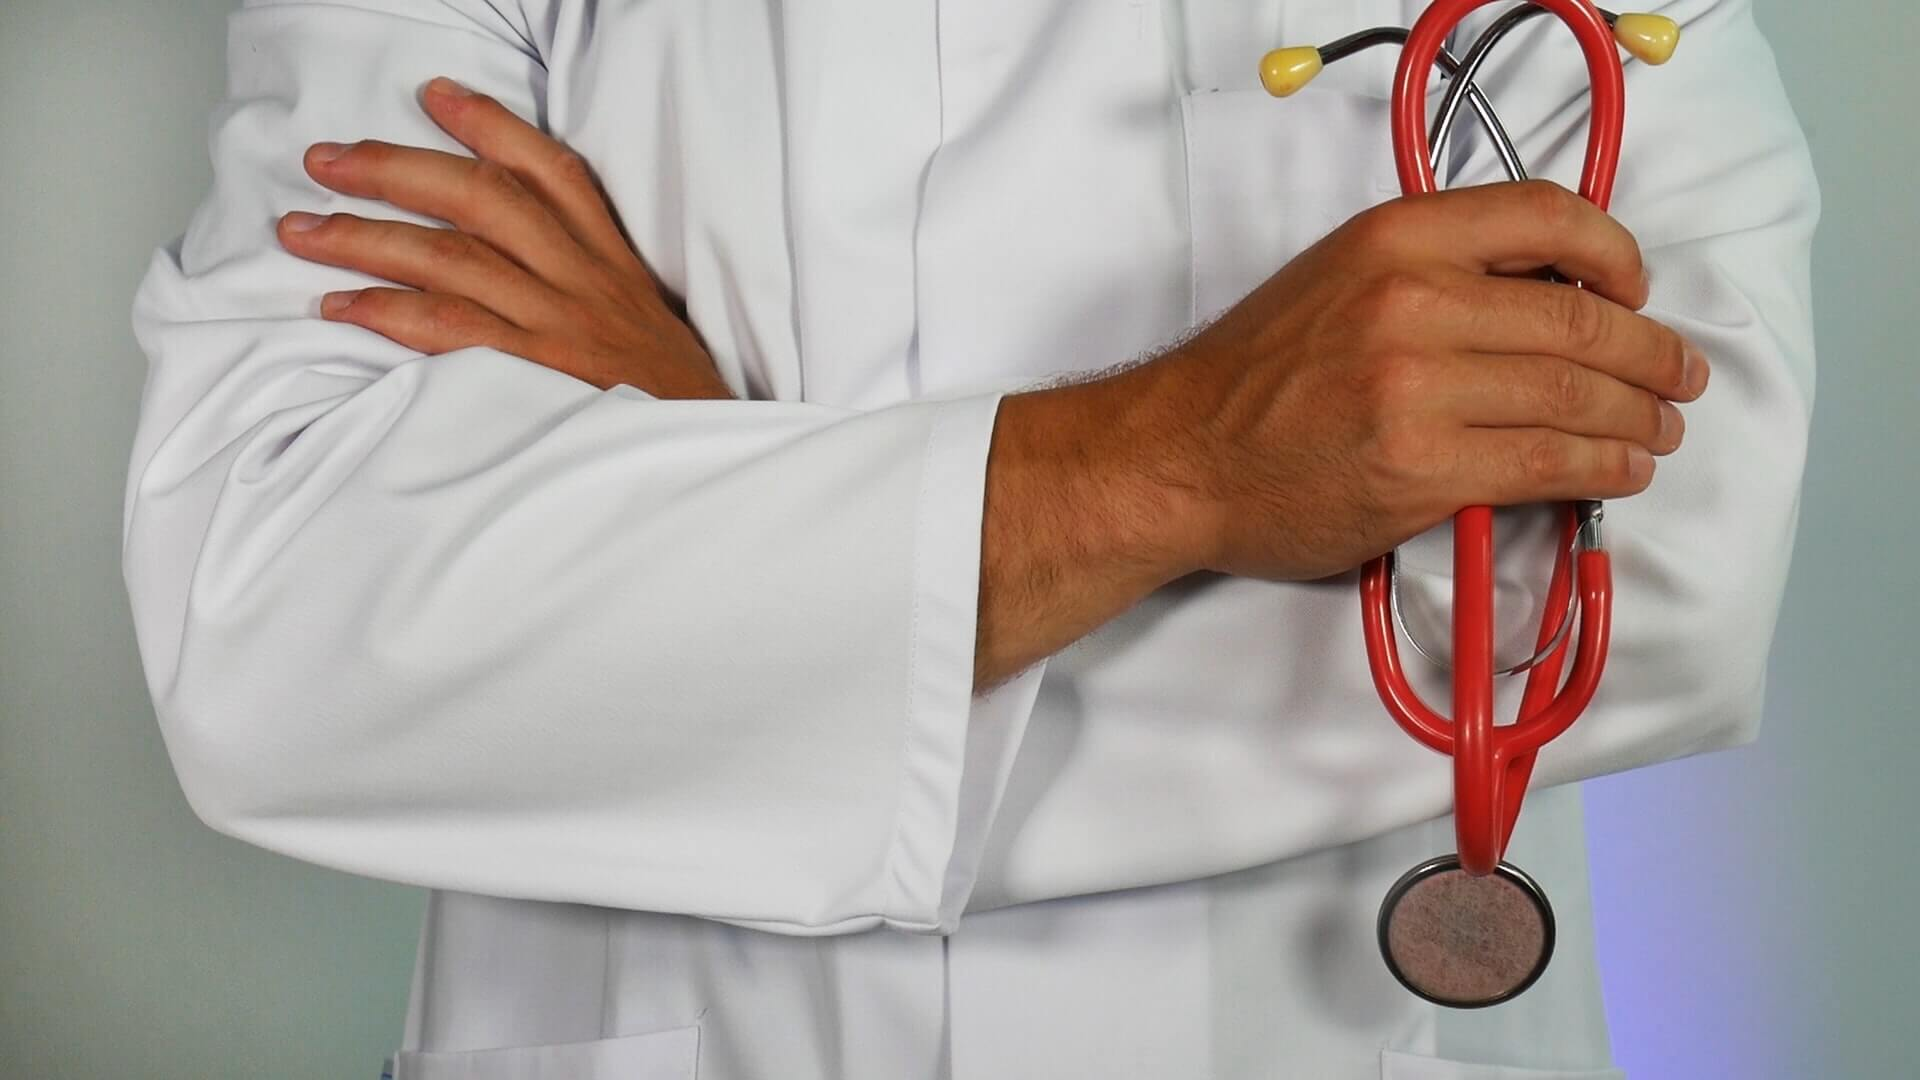 Doctor wearing lab gown with stethoscope